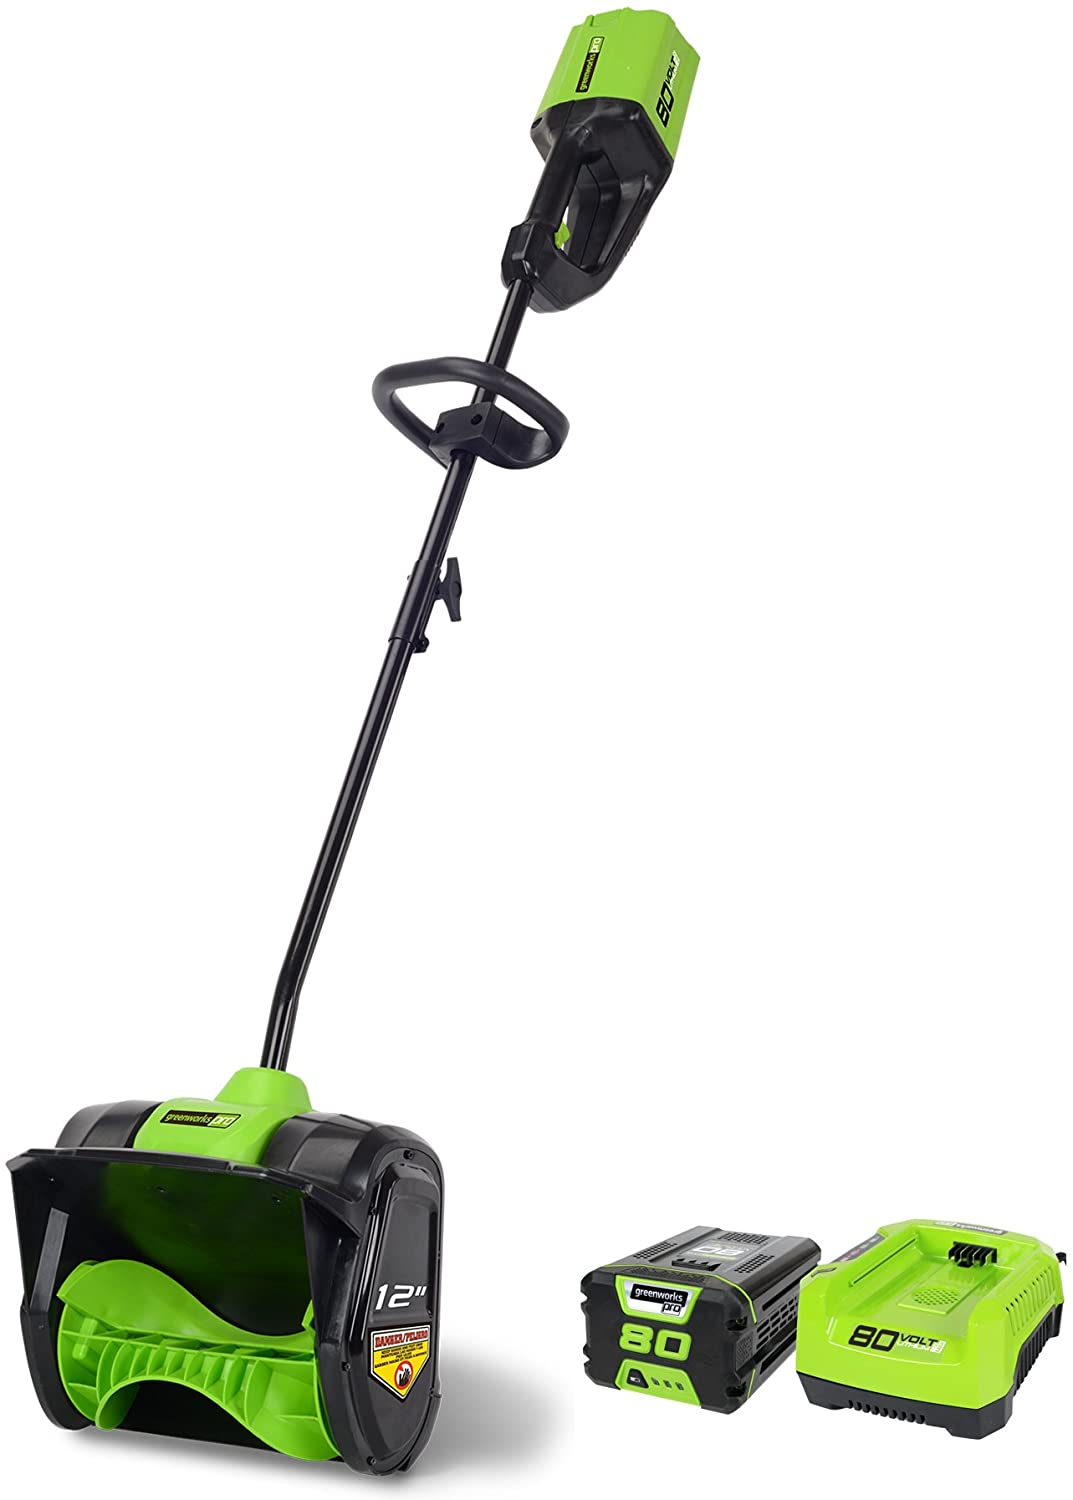 B00YYPQPYC Greenworks PRO 12-Inch 80V Cordless Snow Shovel, 2.0 AH Battery Included 2600602 71NEk0ljqcL